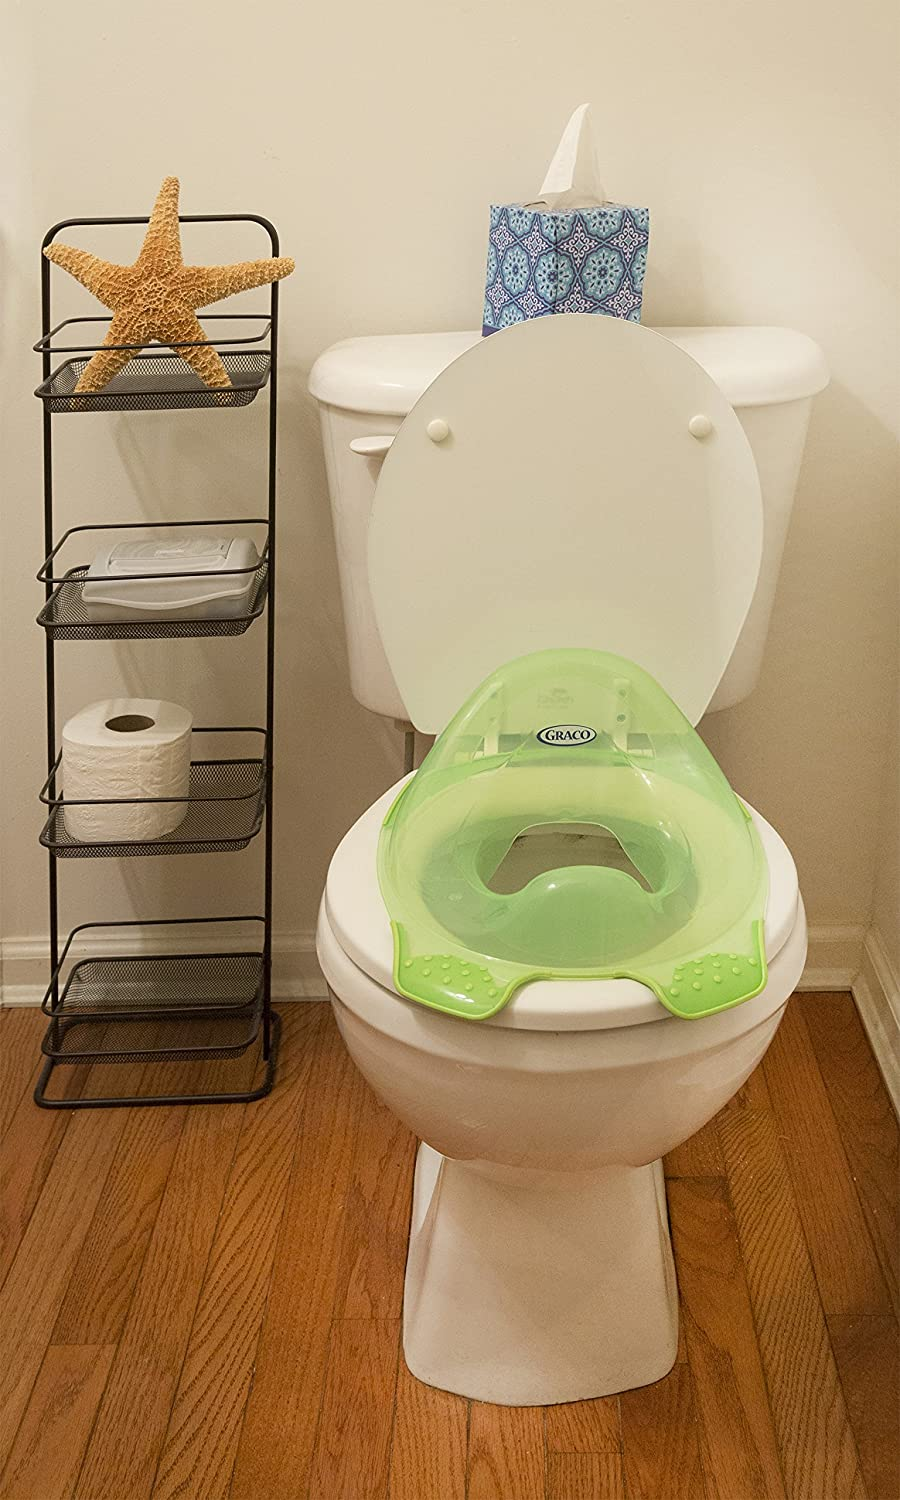 Green Graco Clean Contour Potty Ring